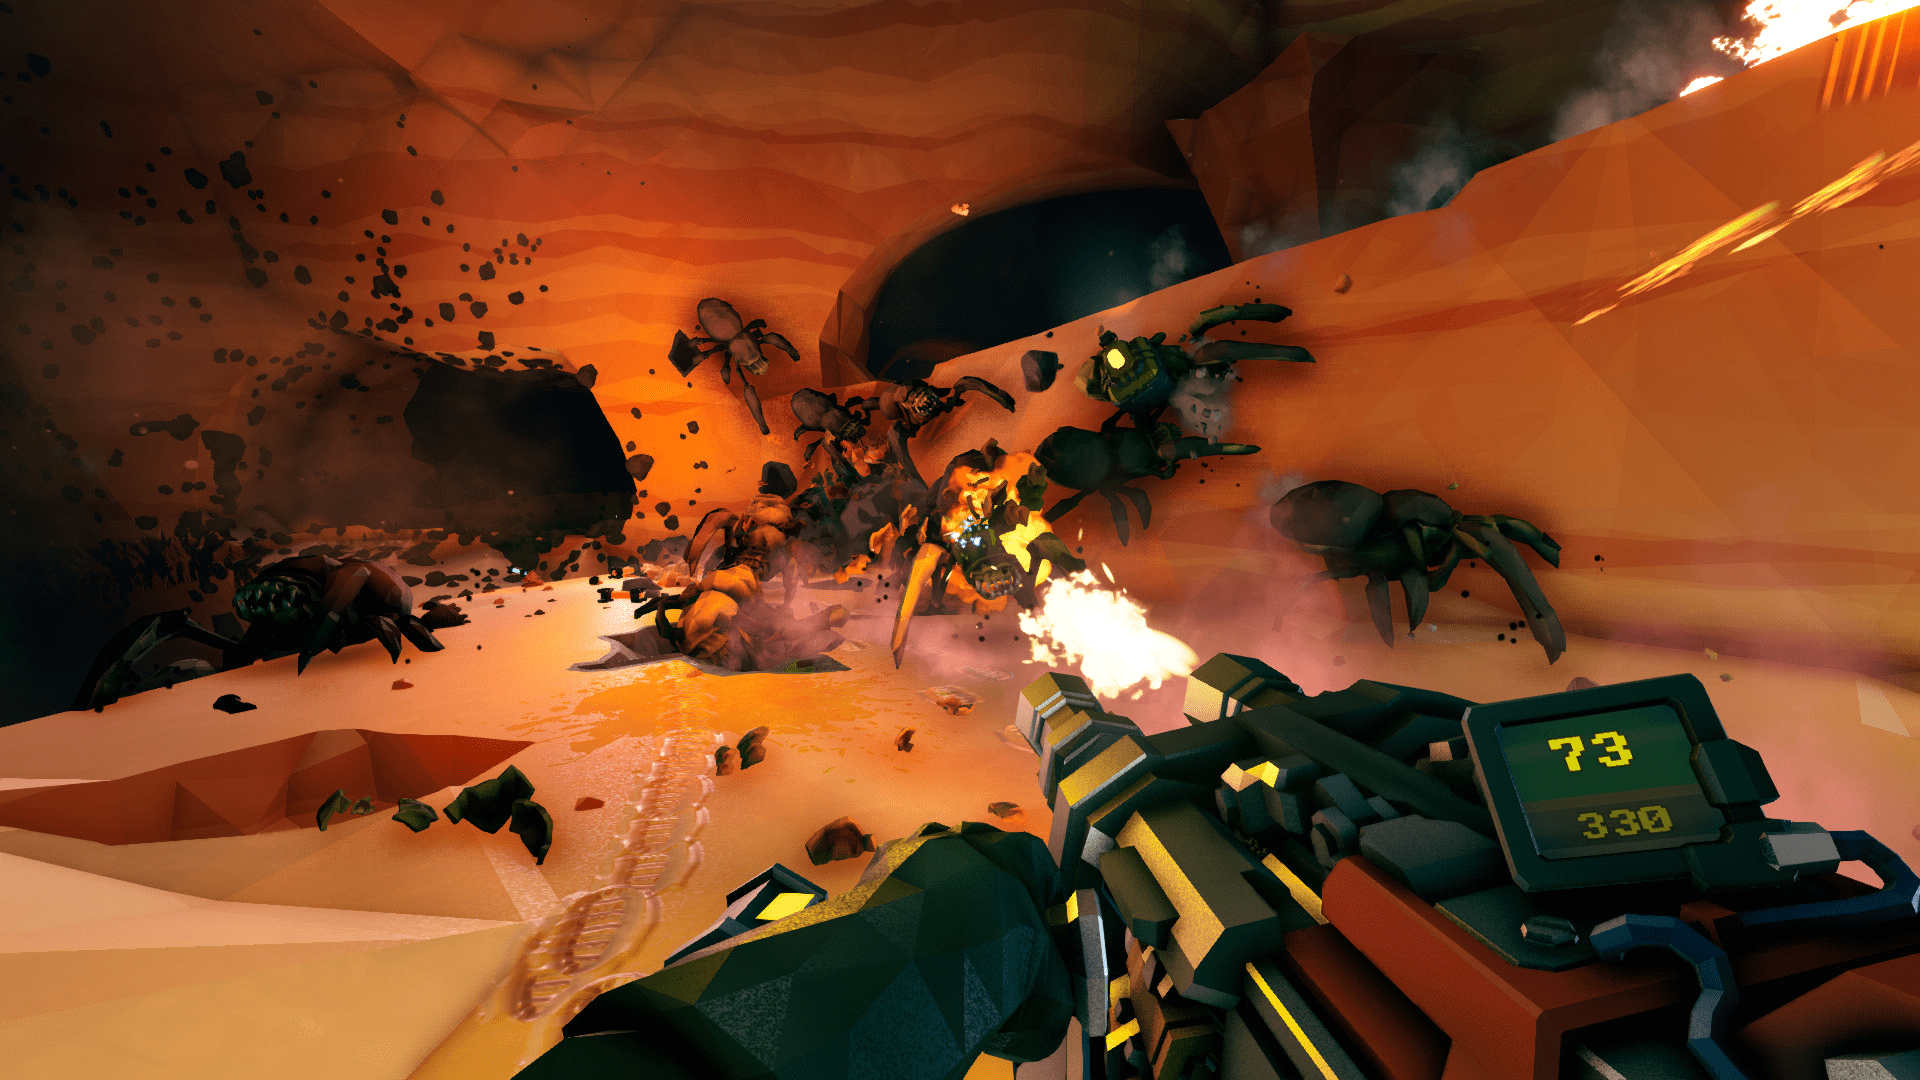 Official Deep Rock Galactic Screenshot, A swarm of Glyphids approaches